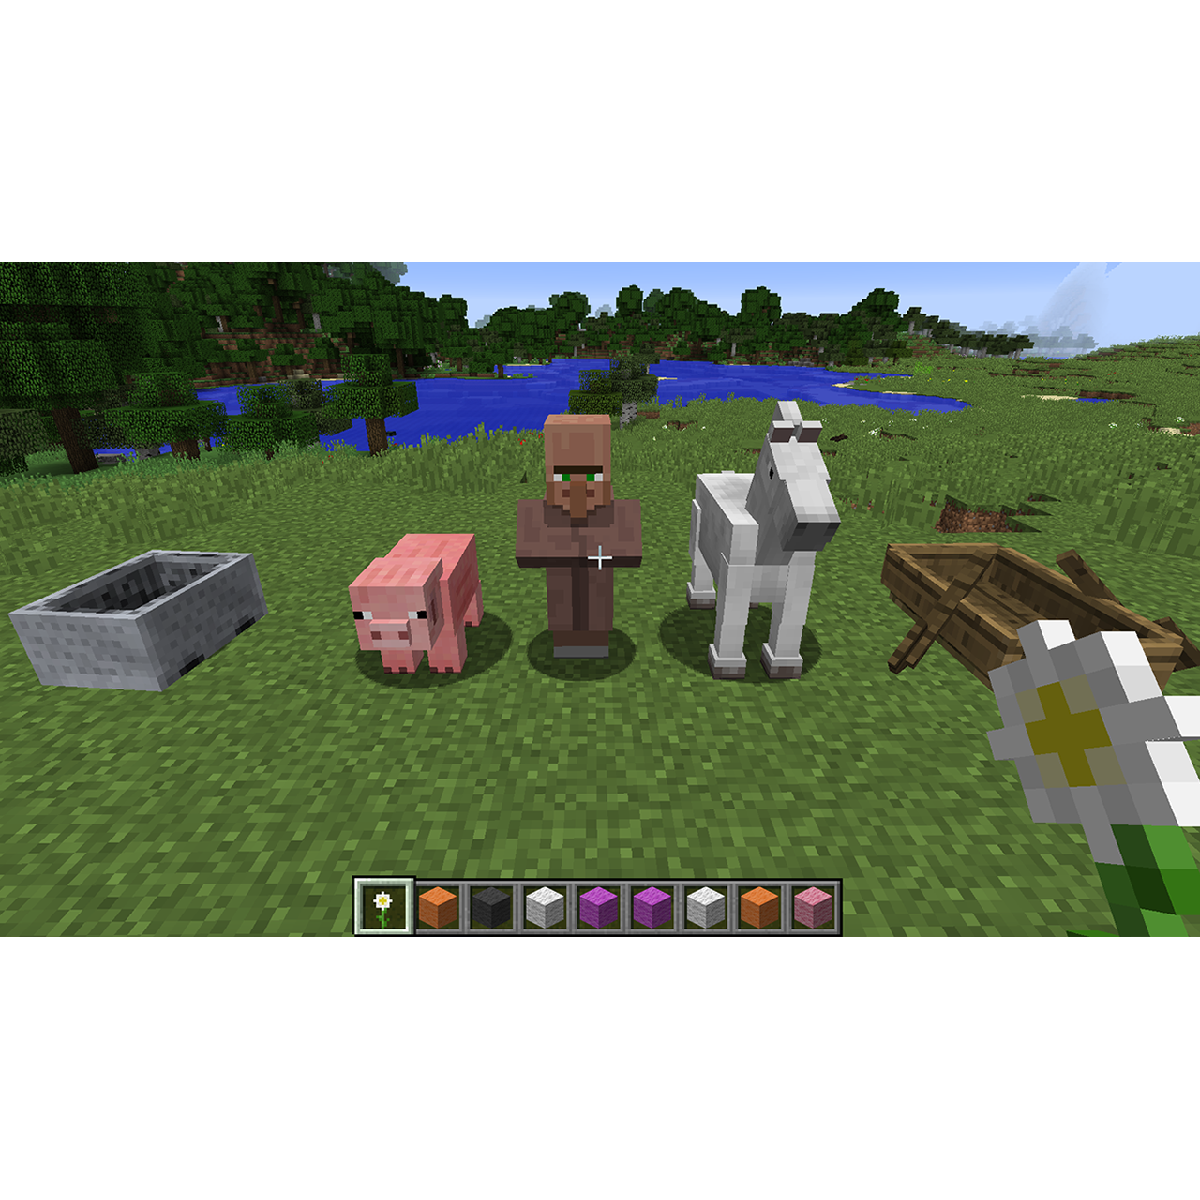 Amazoncom Minecraft For PCMac Online Game Code Video Games - Skins para minecraft 1 8 premium